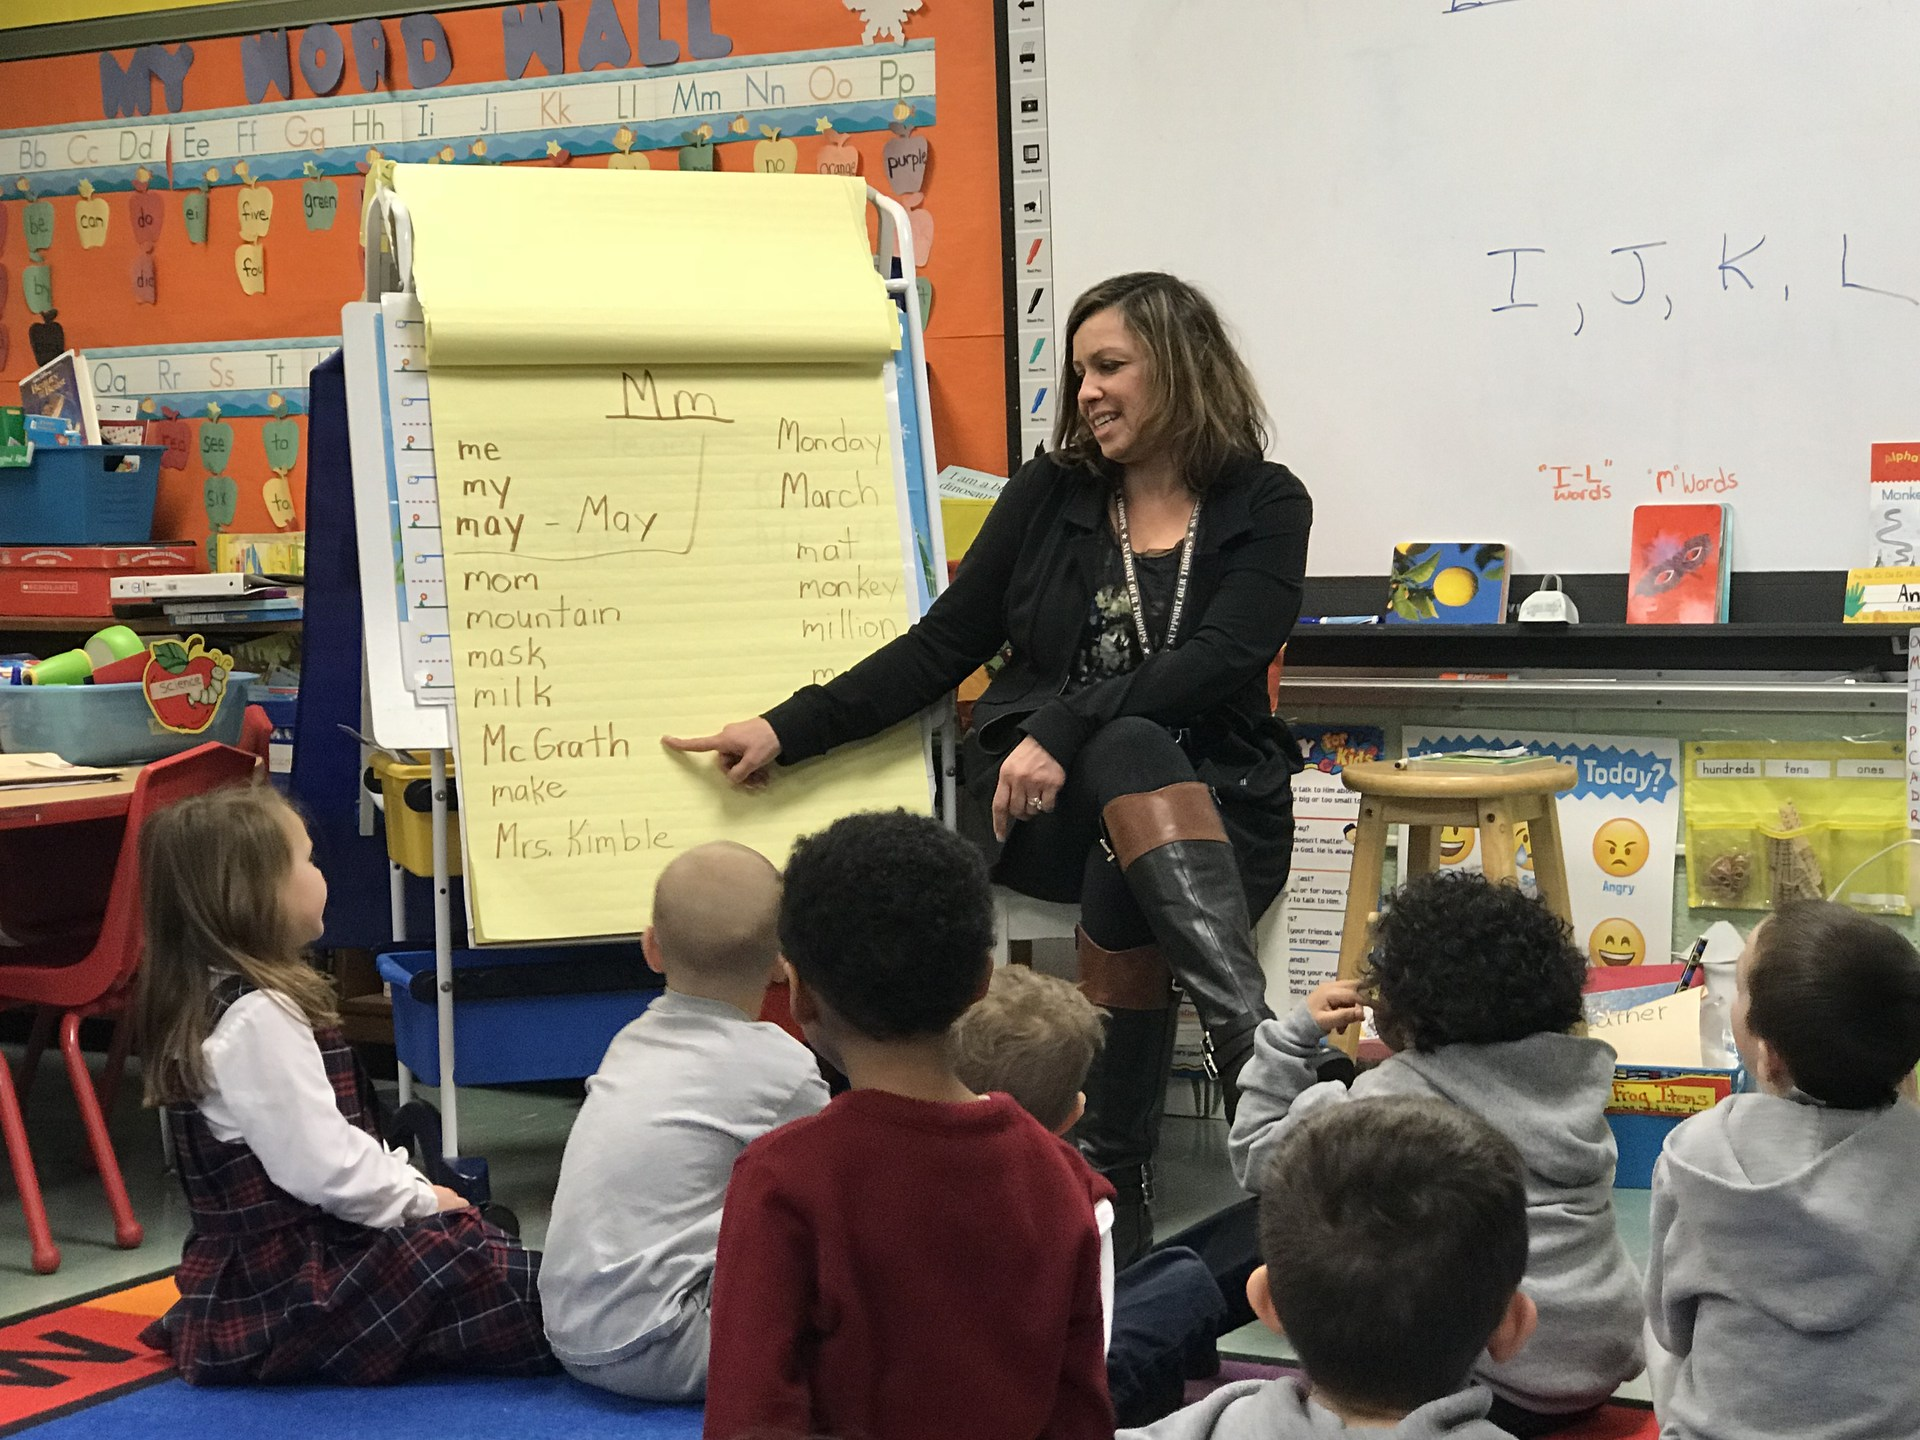 Pre-Kindergarten teacher showing students how to spell words